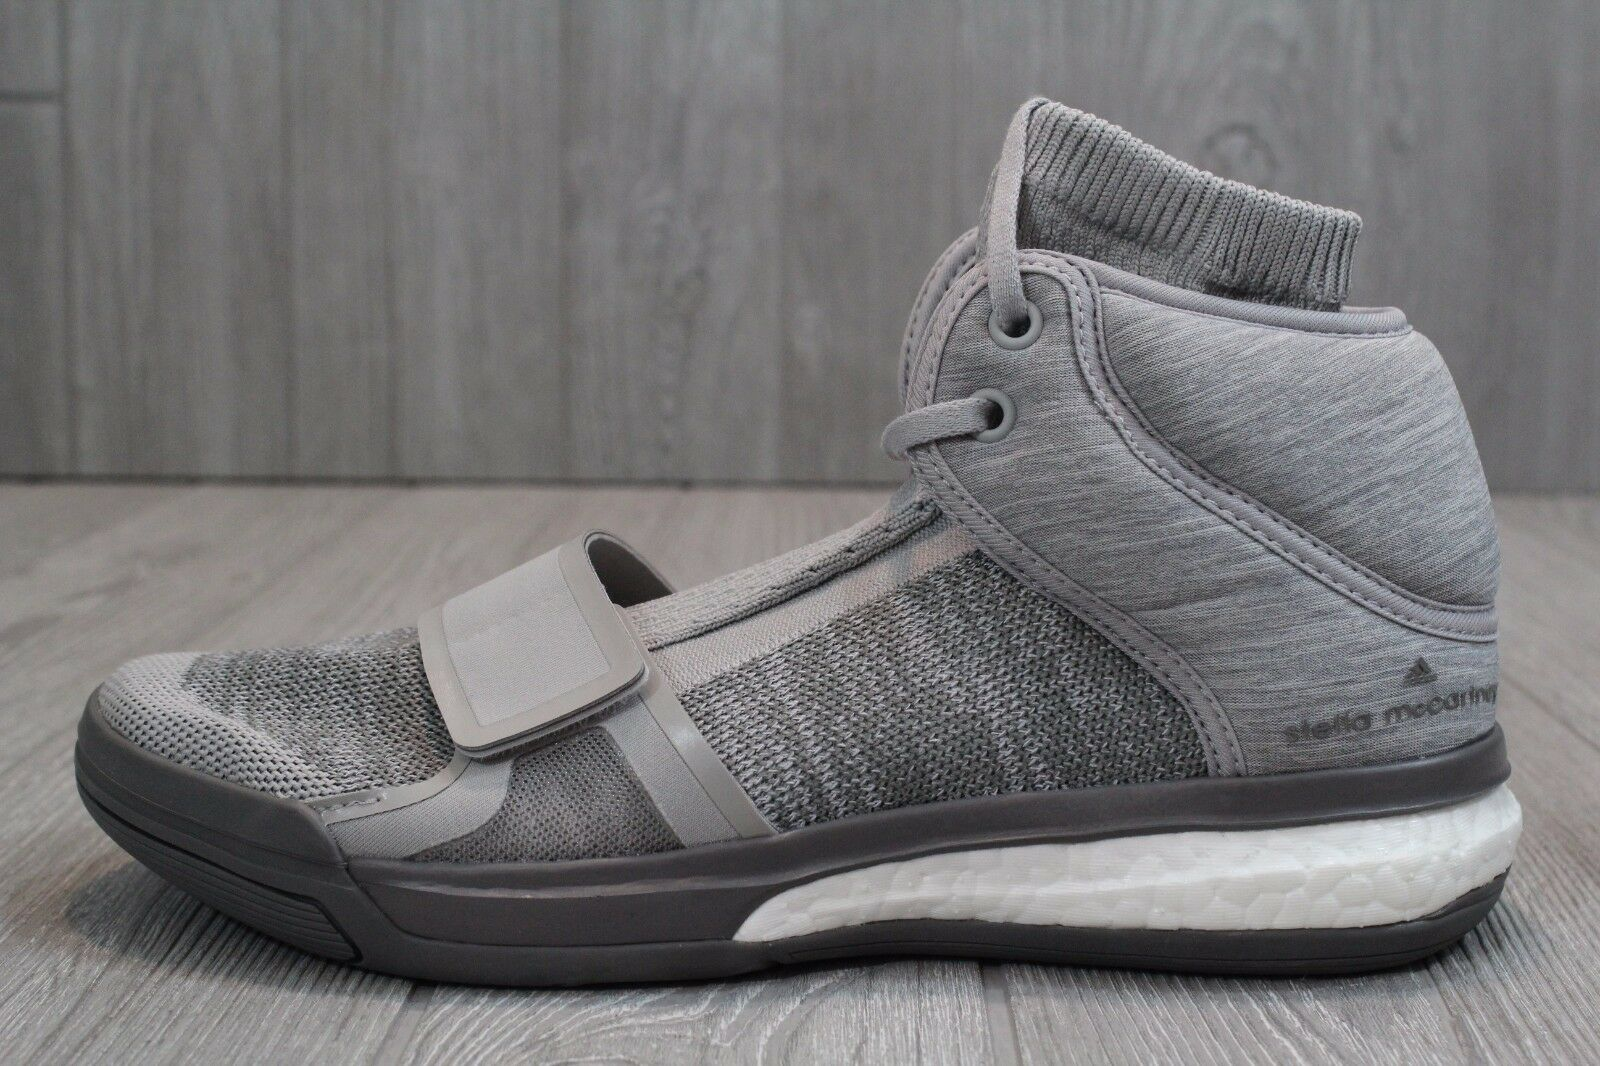 22 New Women's Adidas Stella McCartney Asmc Boost Vibe AF6441 grey shoes 7-9.5